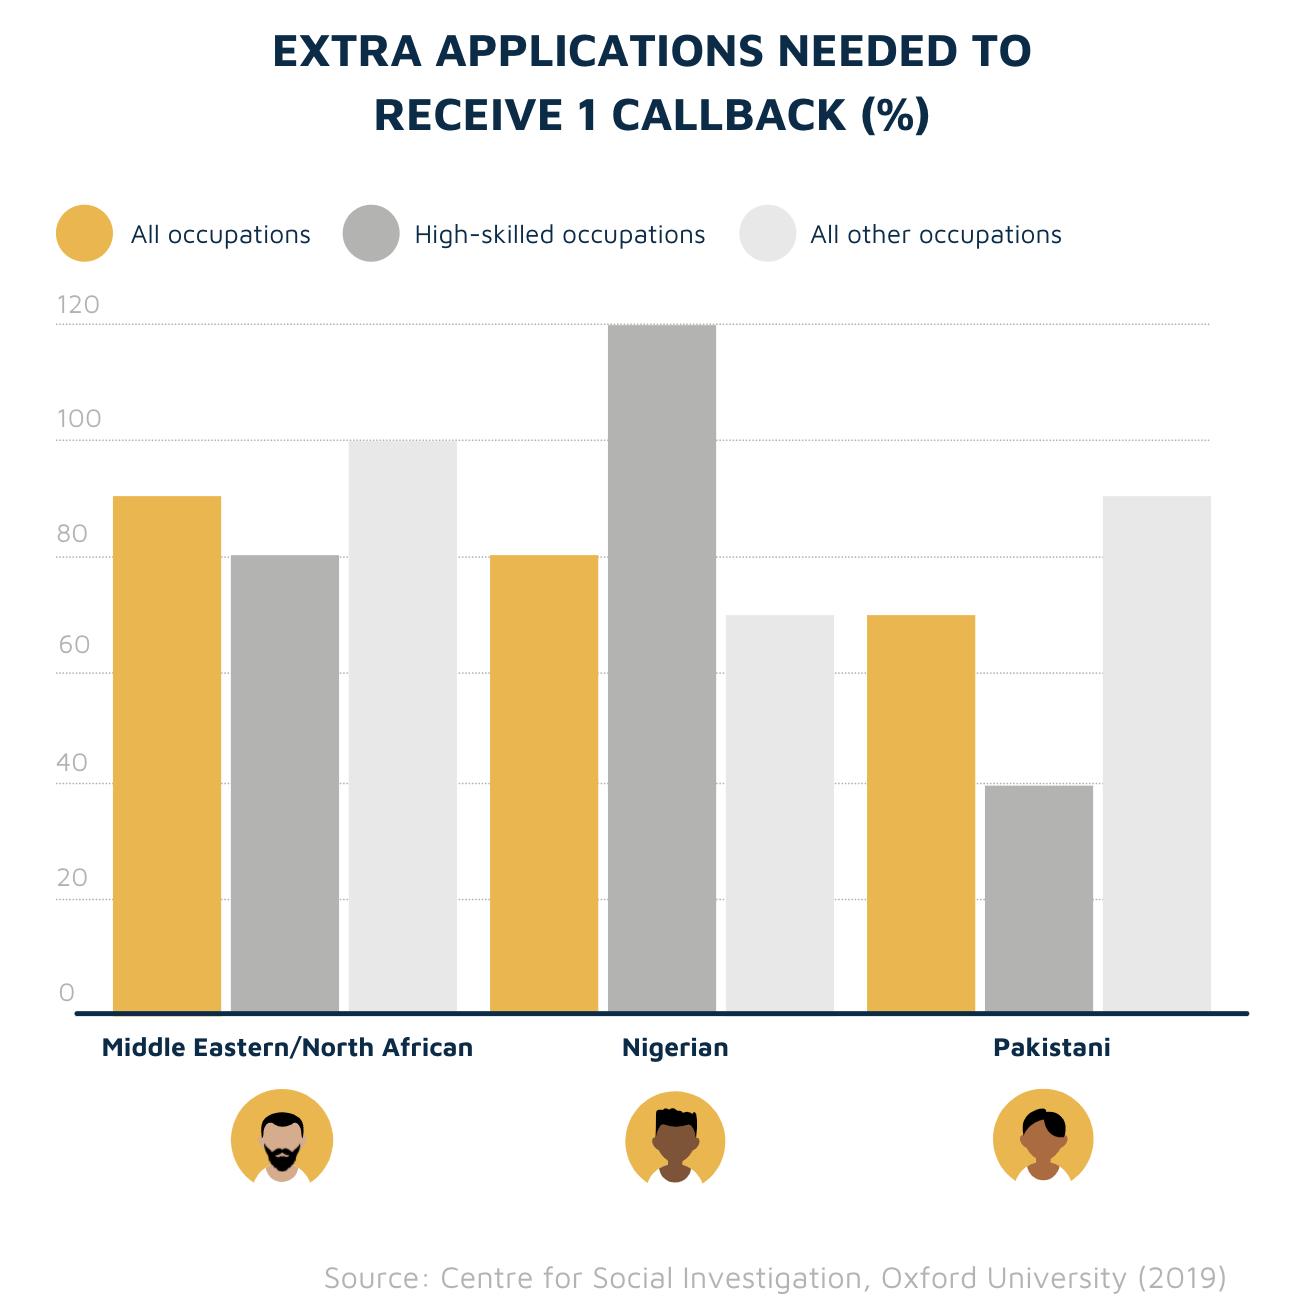 Number of applications needed for 1 callback by ethnicity